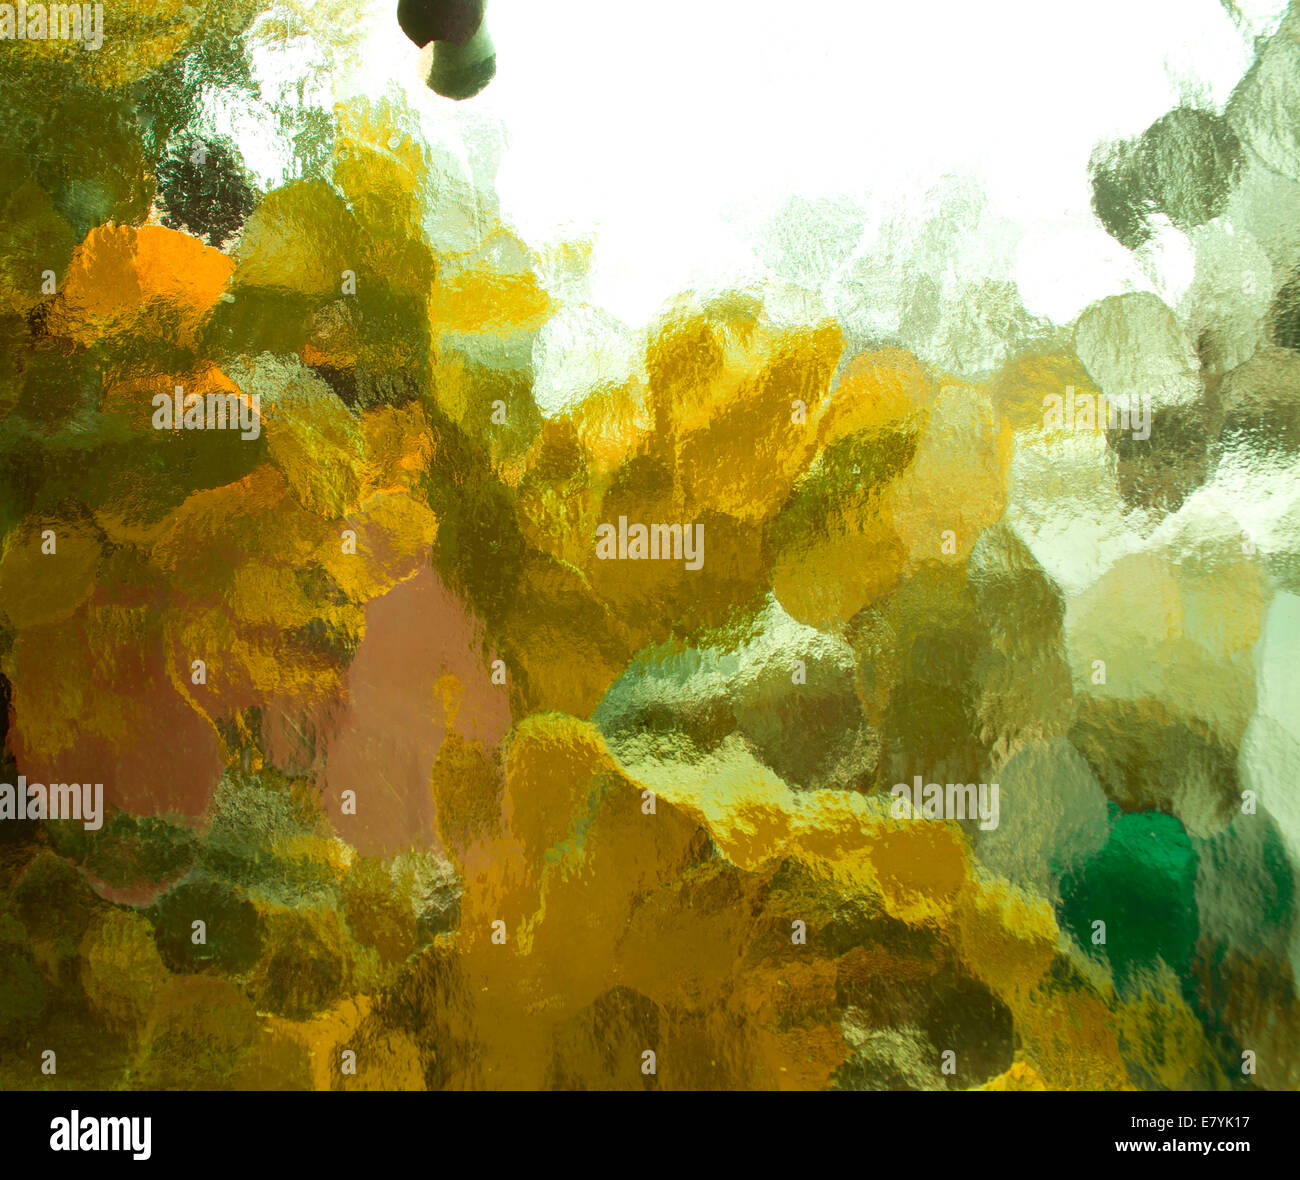 Frosted glass texture of an abstract colorful scene. - Stock Image